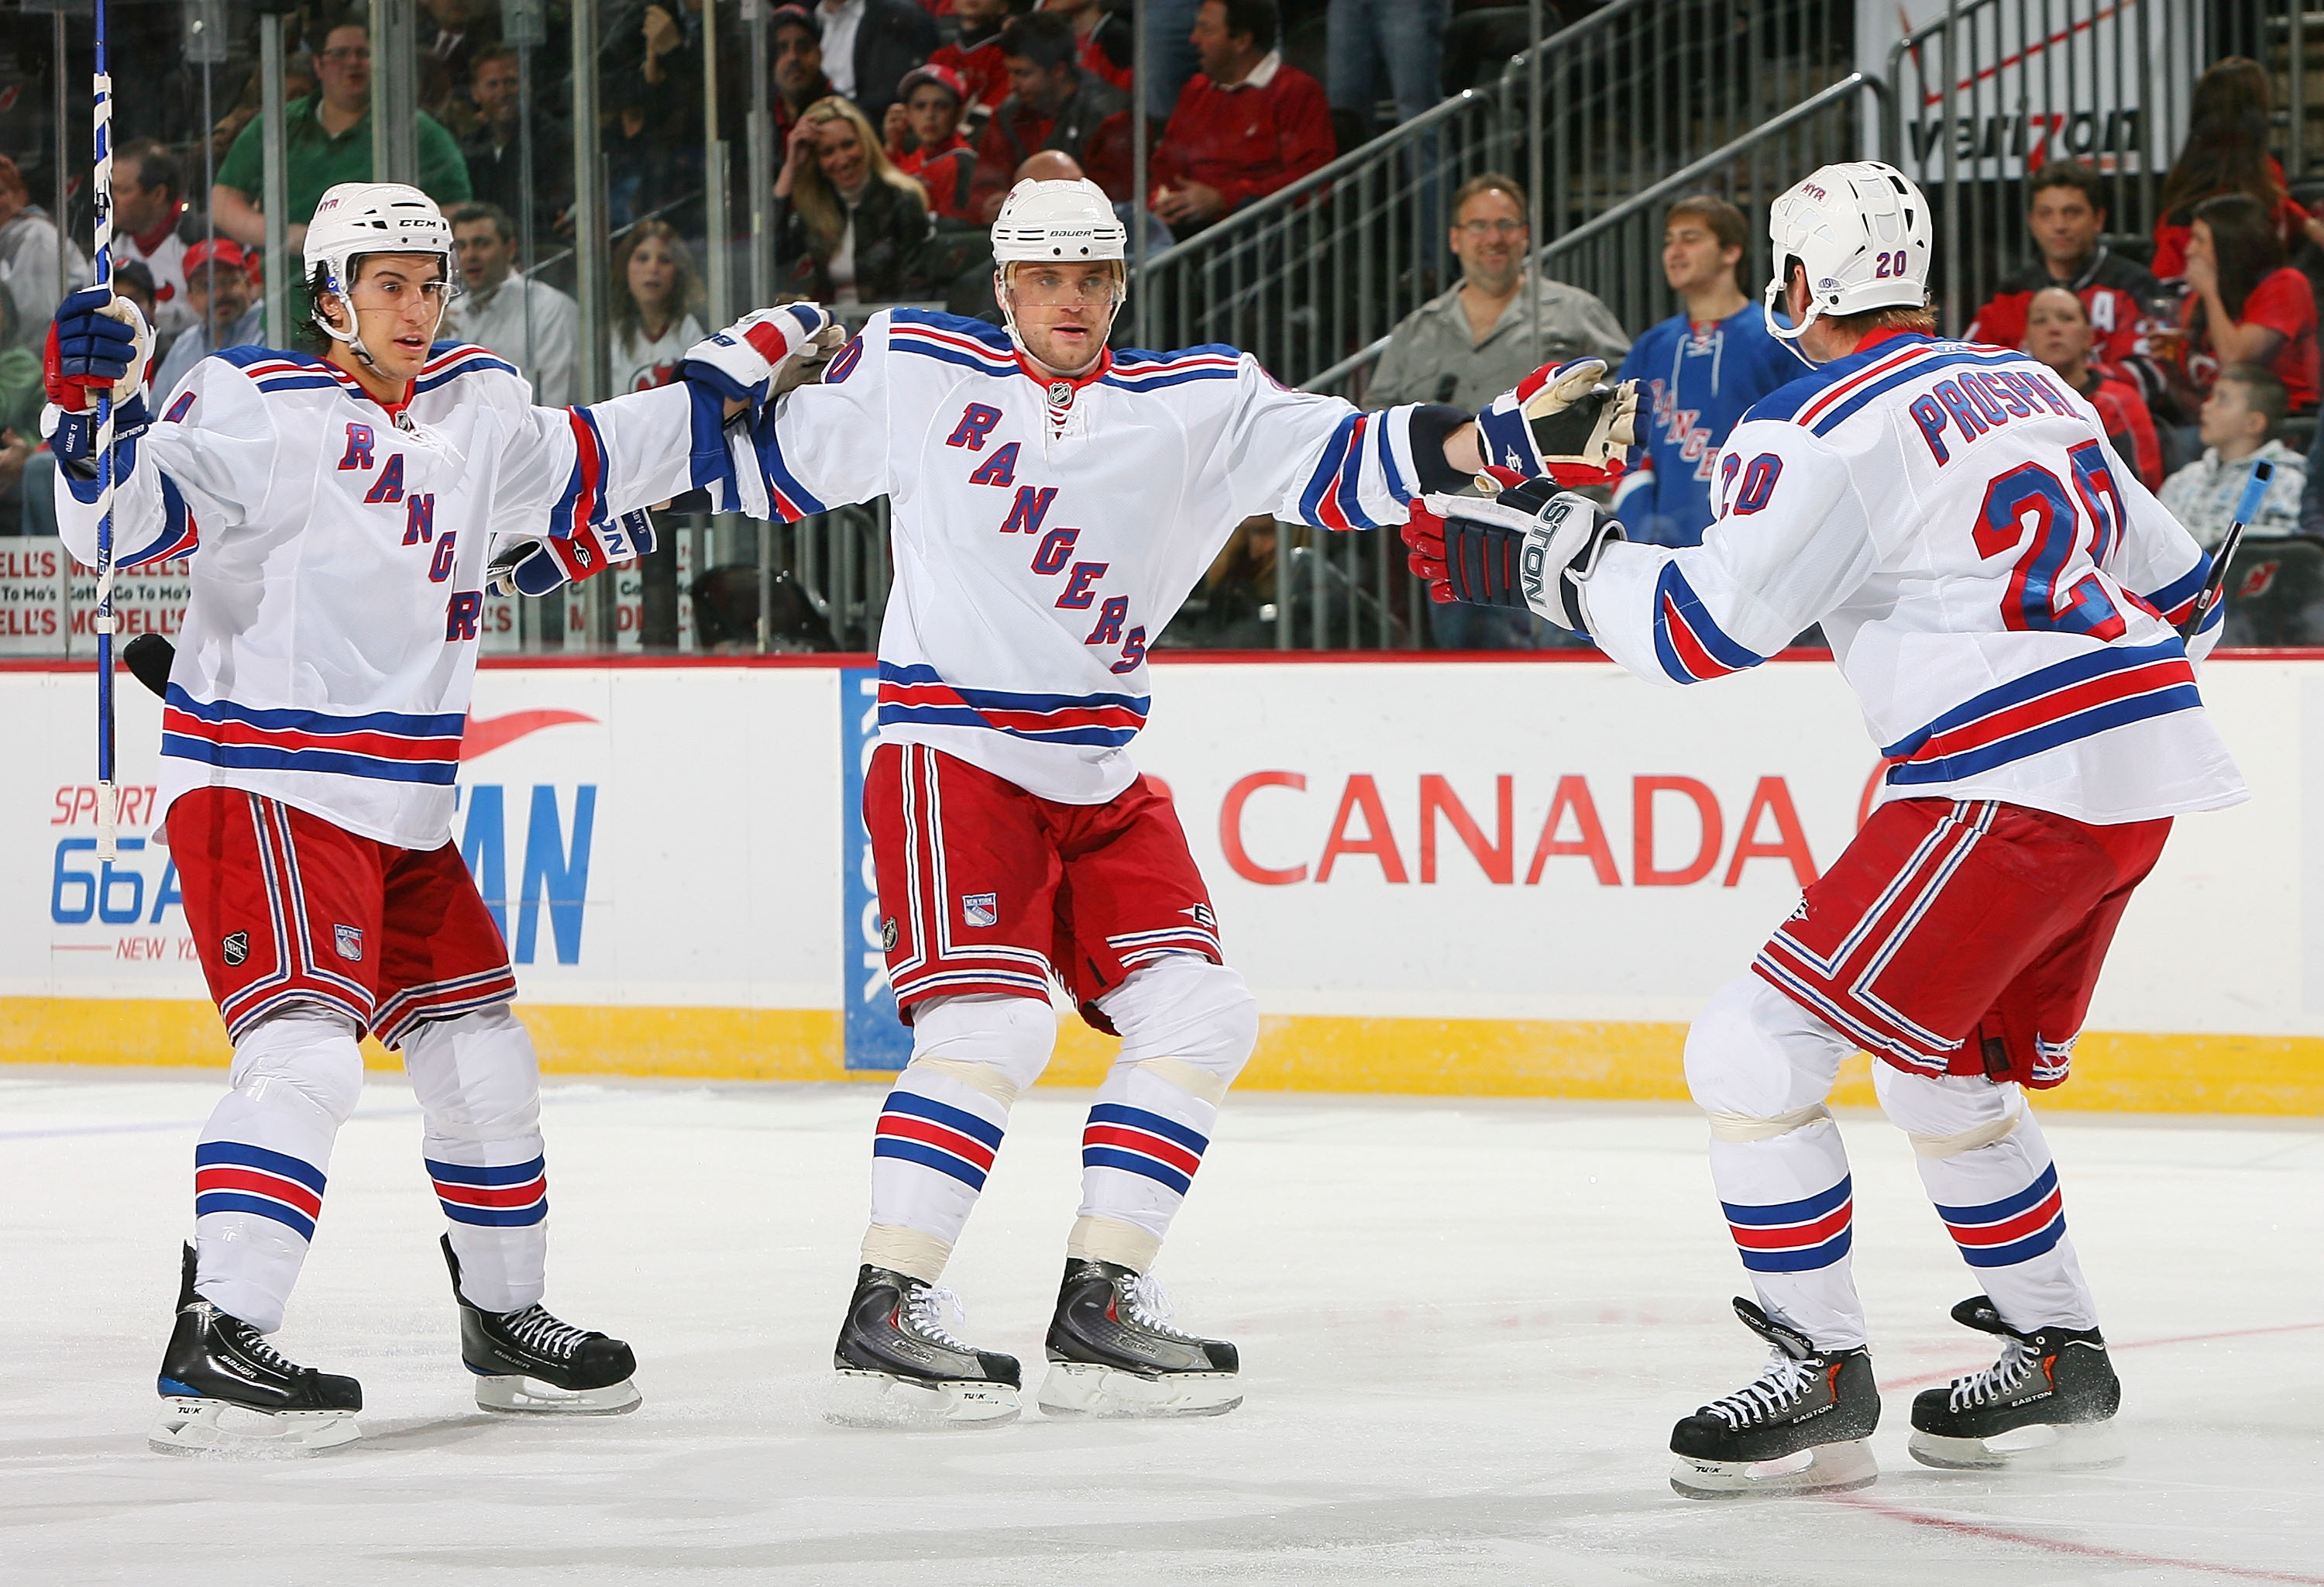 NEWARK, NJ - JANUARY 10:  Vinny Prospal #20 of the New York Rangers celebrates his first-period goal with teammates Marian Gaborik #10 and Michael del Zotto #4 during NHL action against the New Jersey Devils at the Prudential Center on March 10, 2010 in N